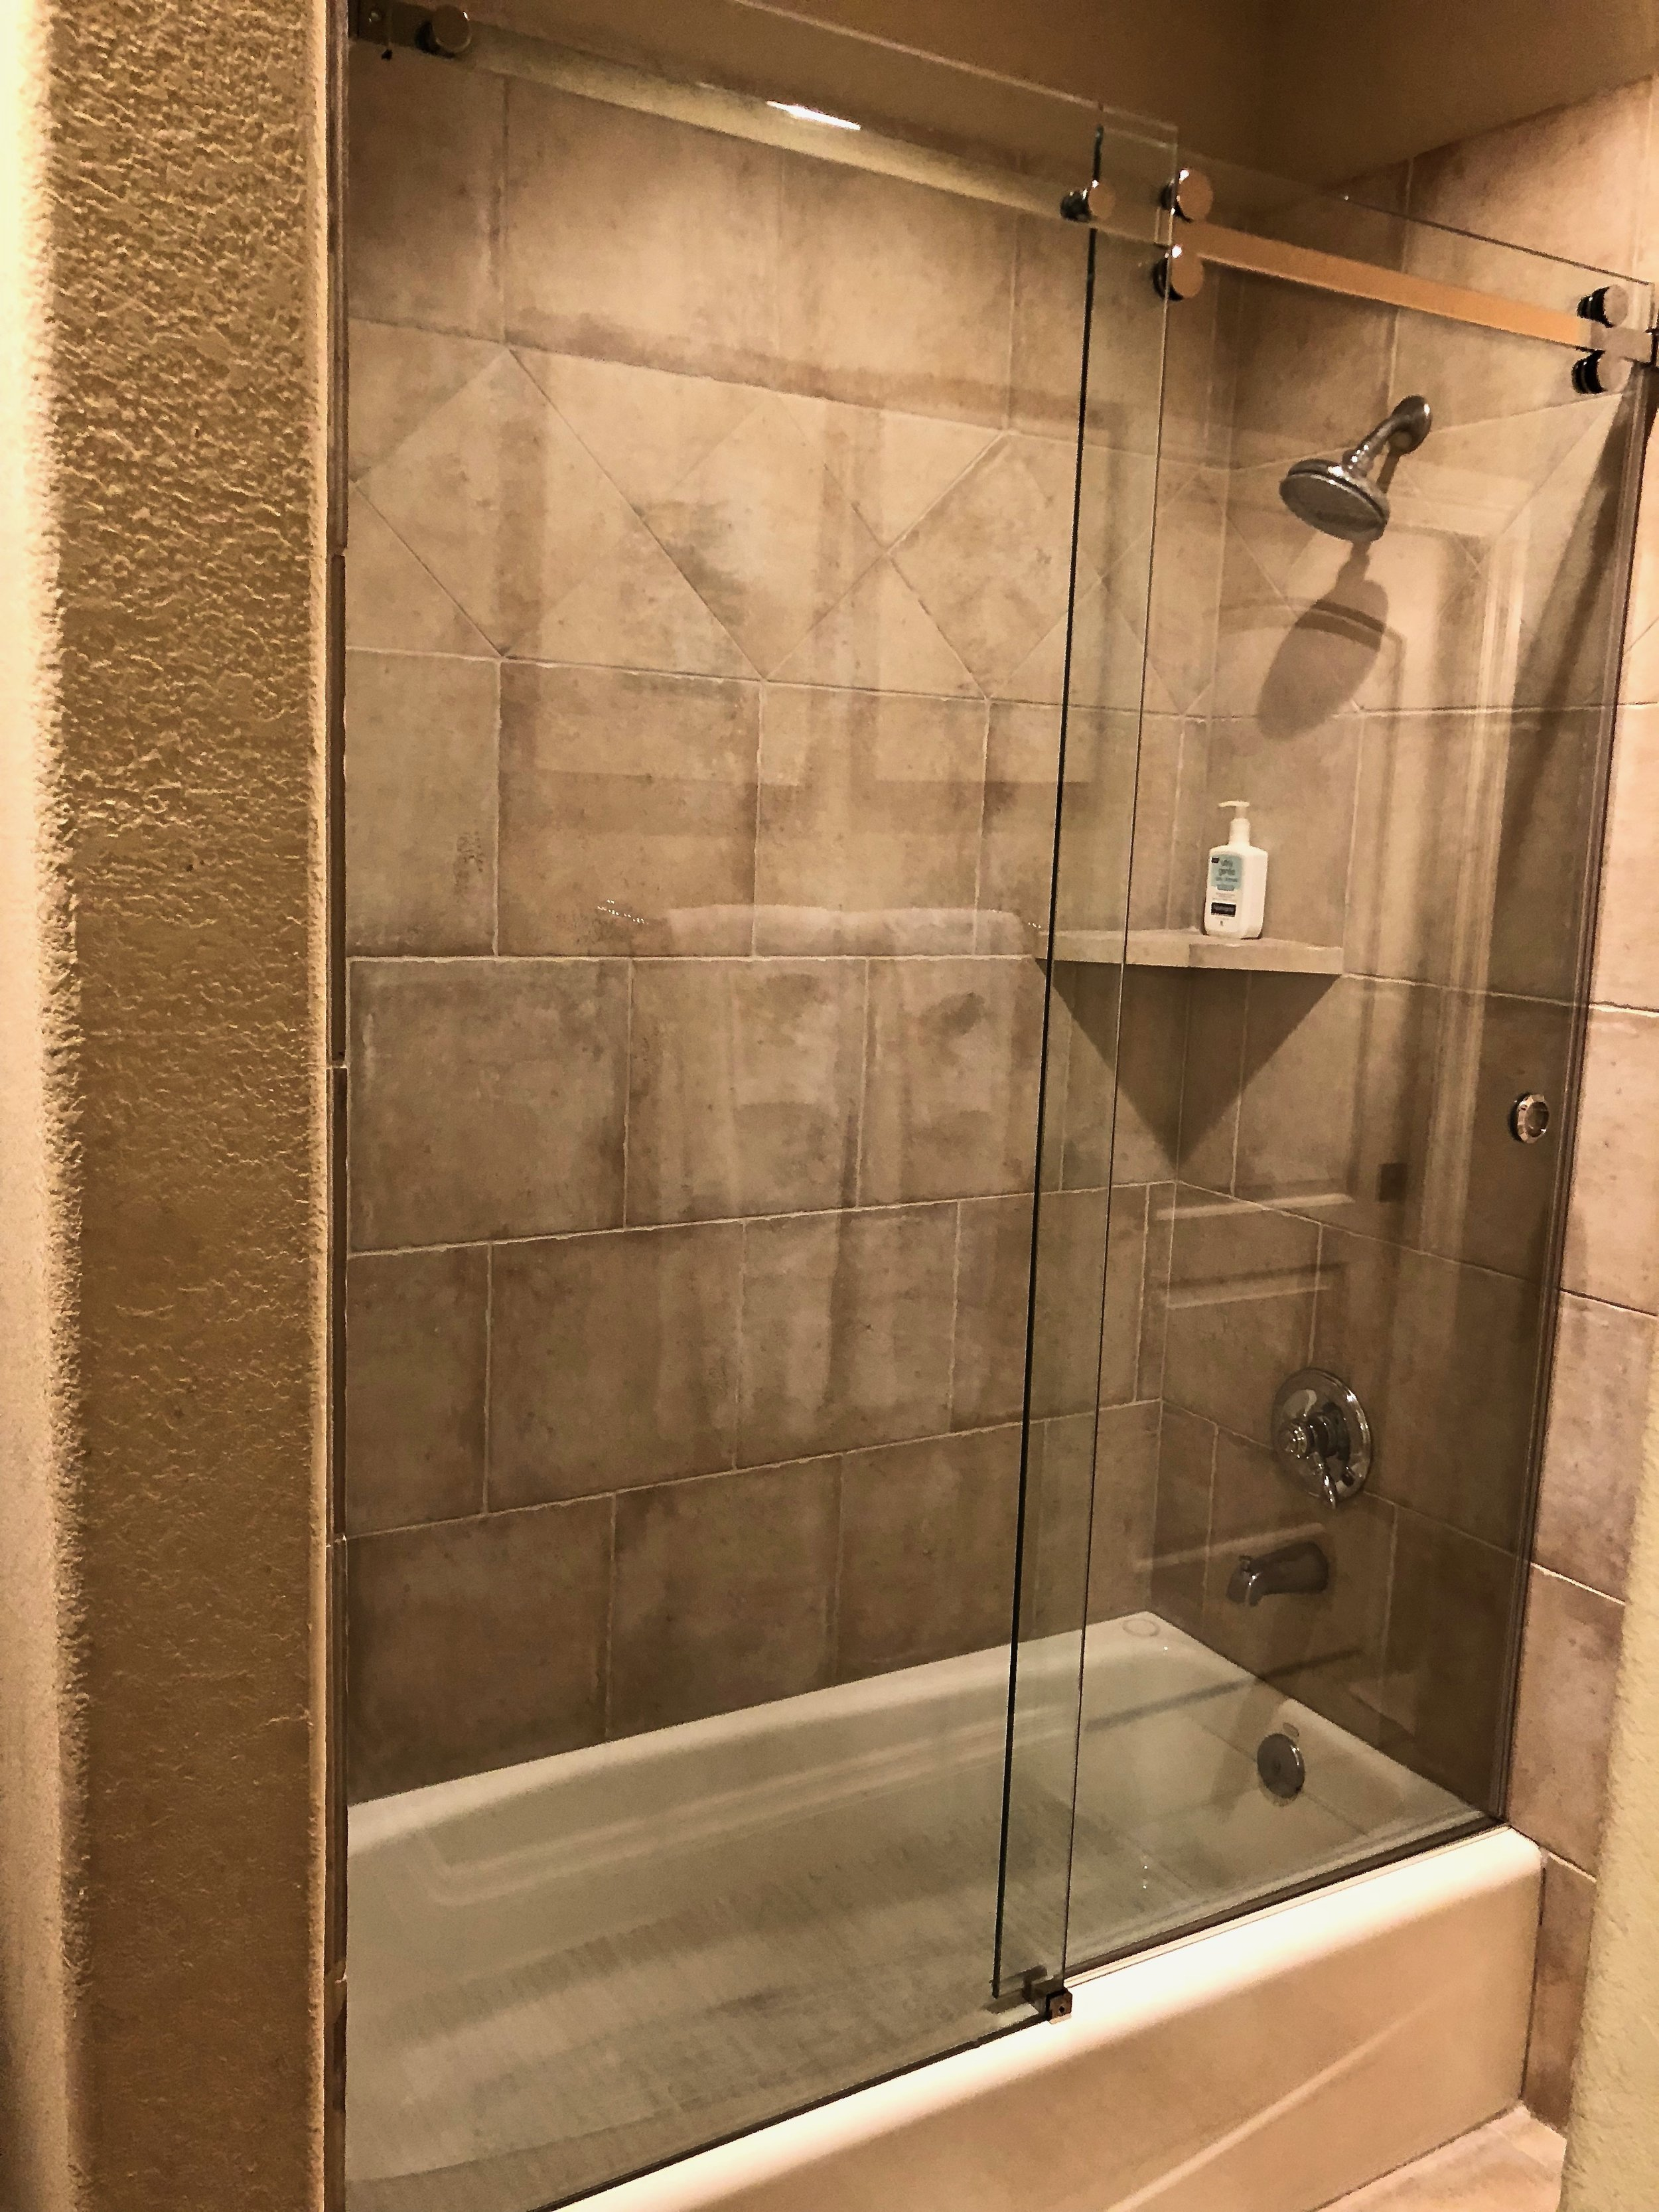 take down the curtain glass options